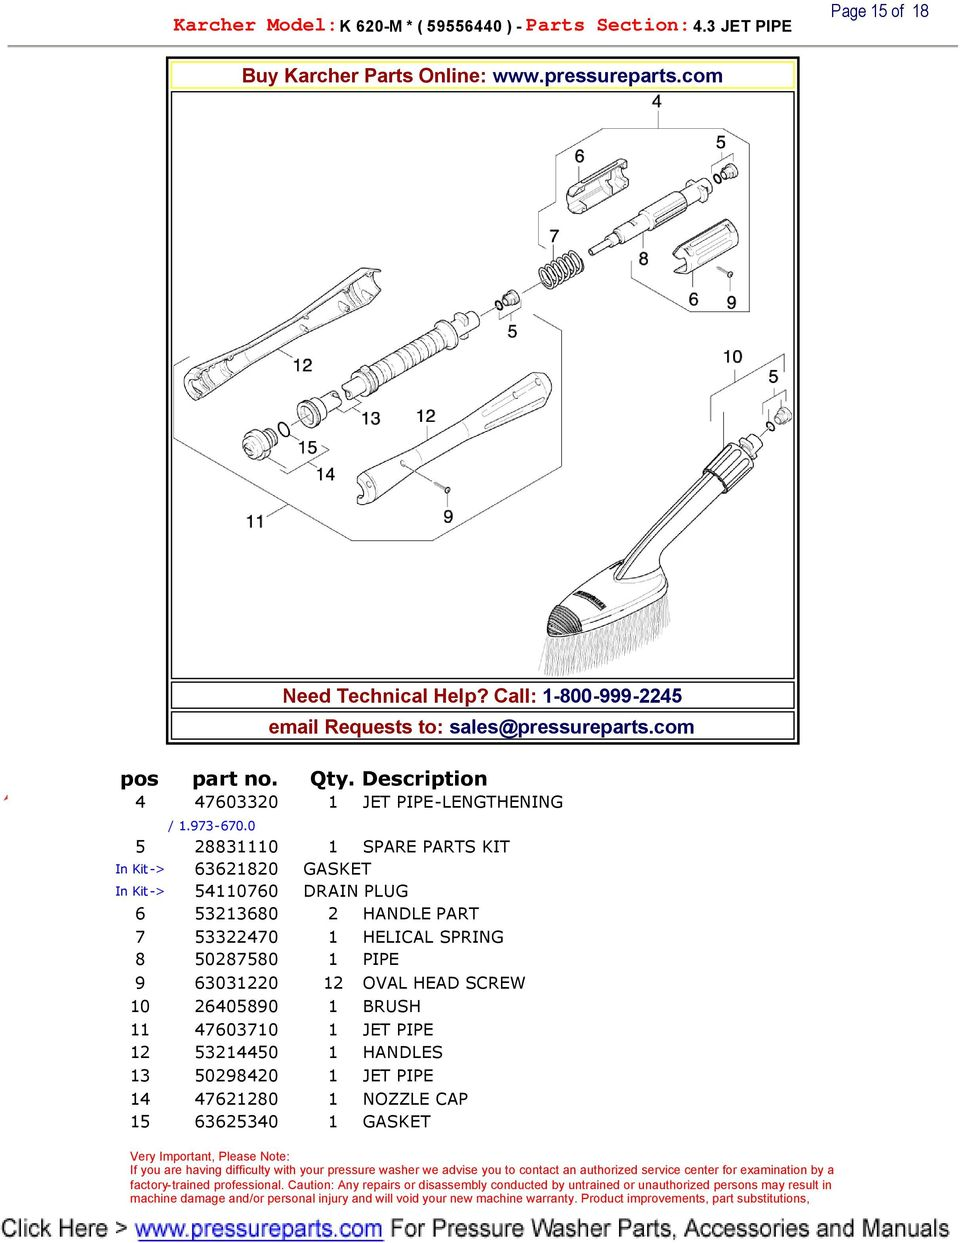 0 5 28831110 1 SPARE PARTS KIT In Kit -> 63621820 GASKET In Kit -> 54110760 DRAIN PLUG 6 53213680 2 HANDLE PART